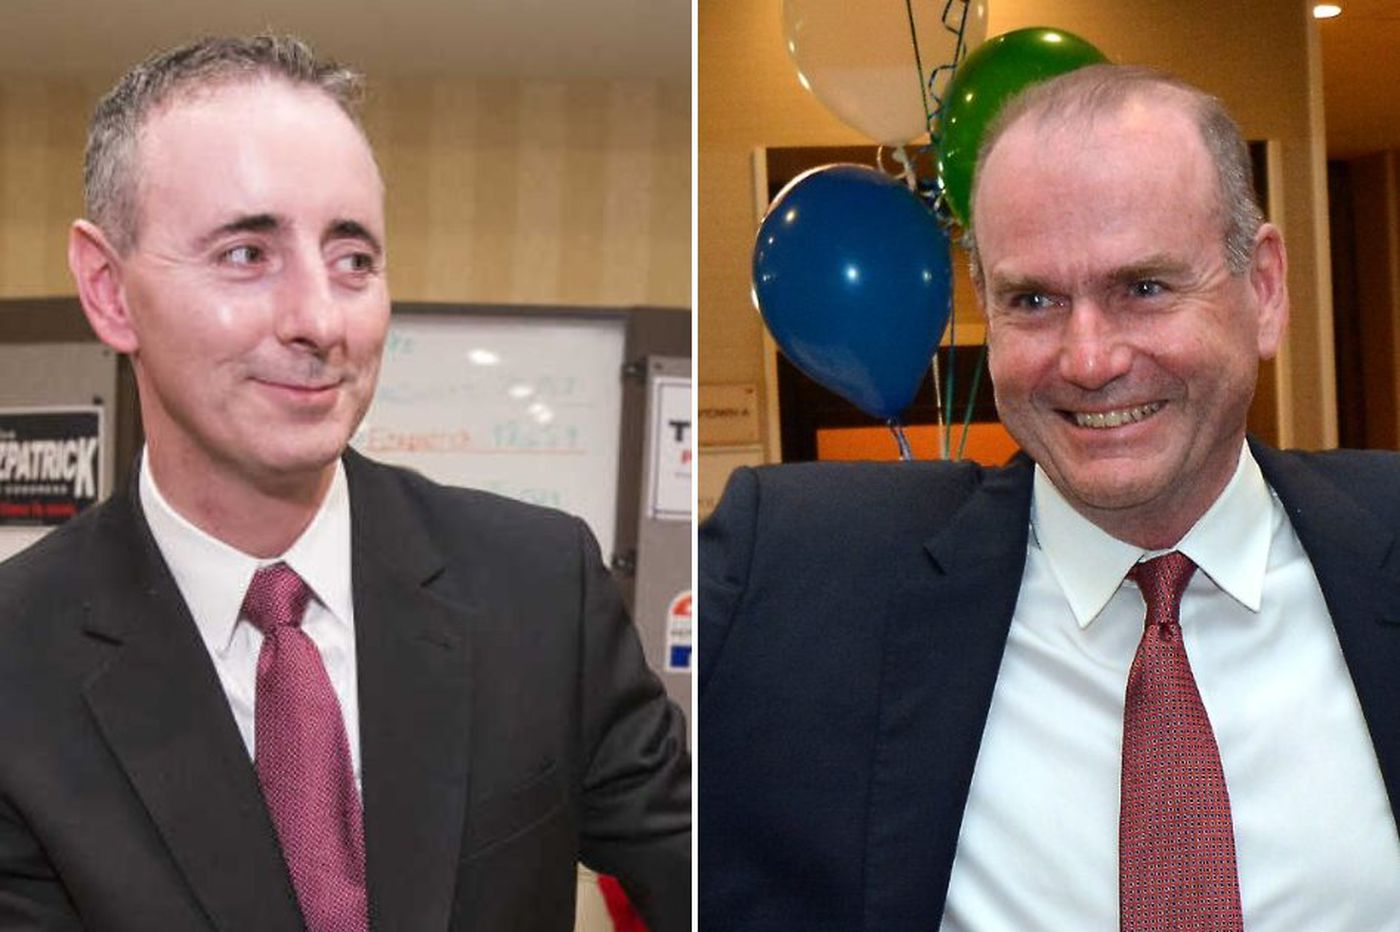 Poll: Rep. Brian Fitzpatrick leads challenger Scott Wallace in close Bucks congressional race